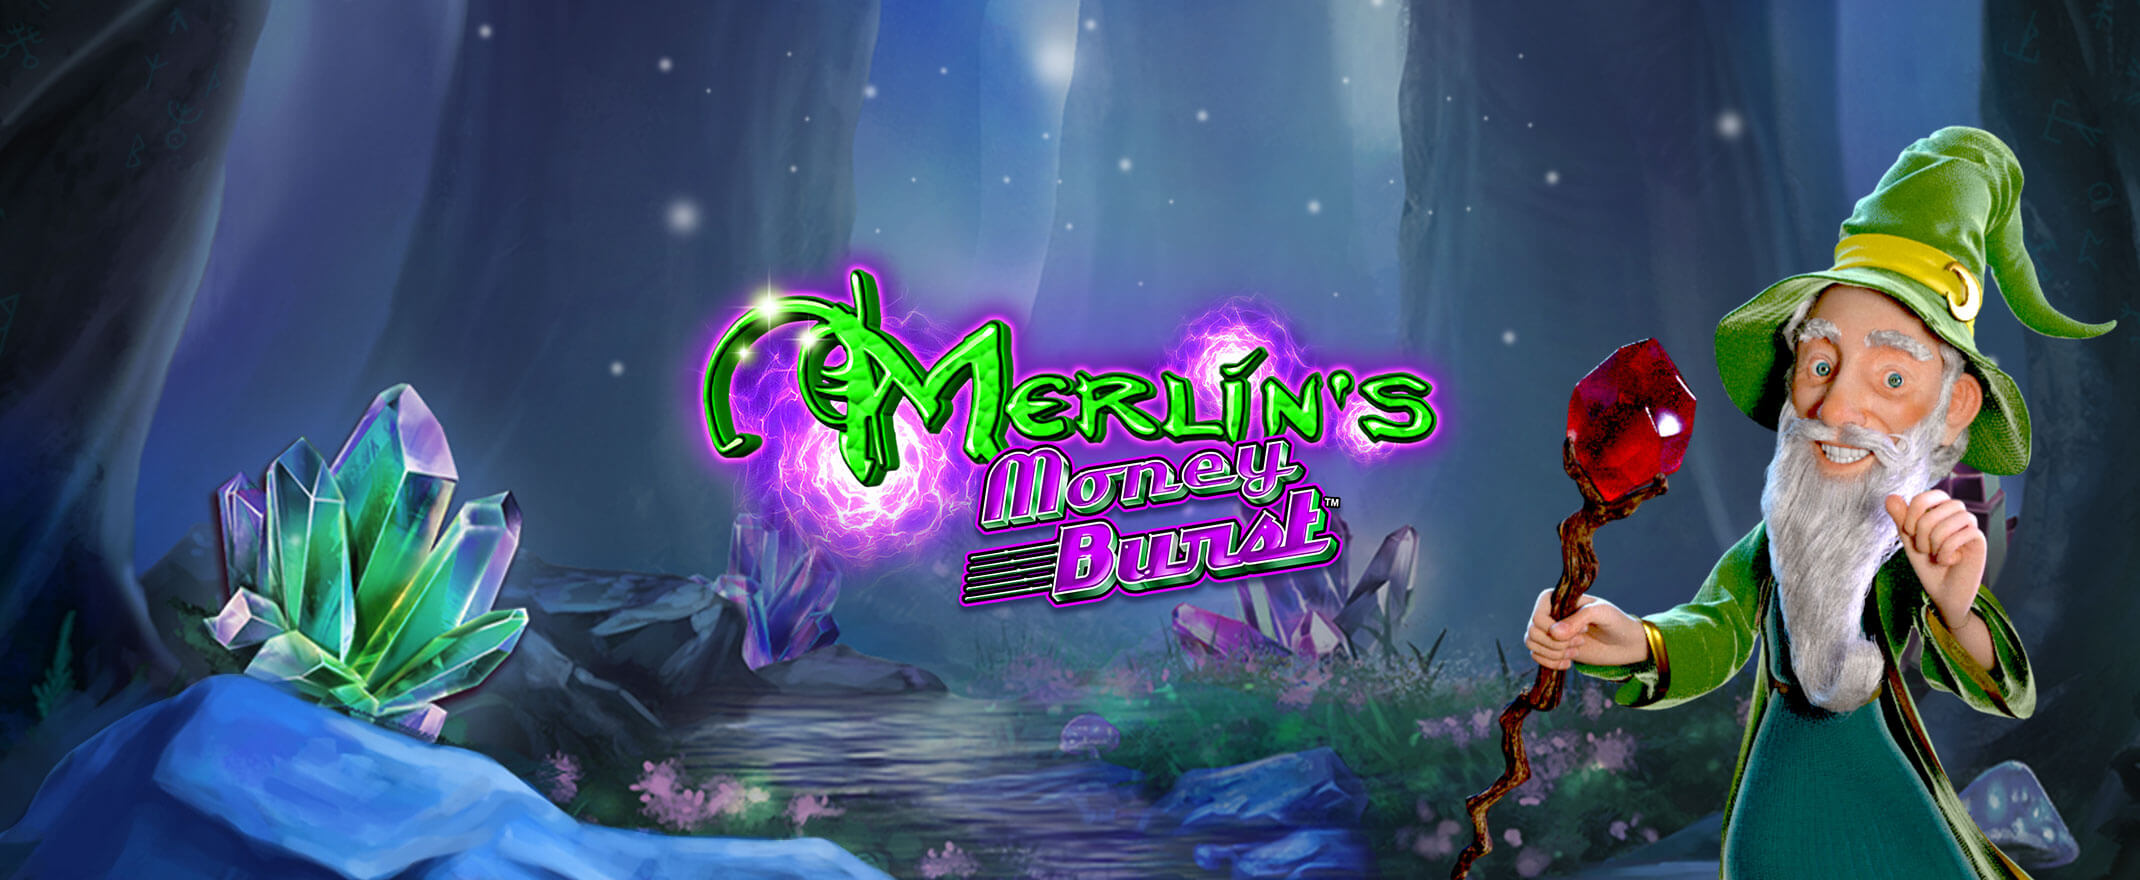 Merlin's Money Burst, new slot game